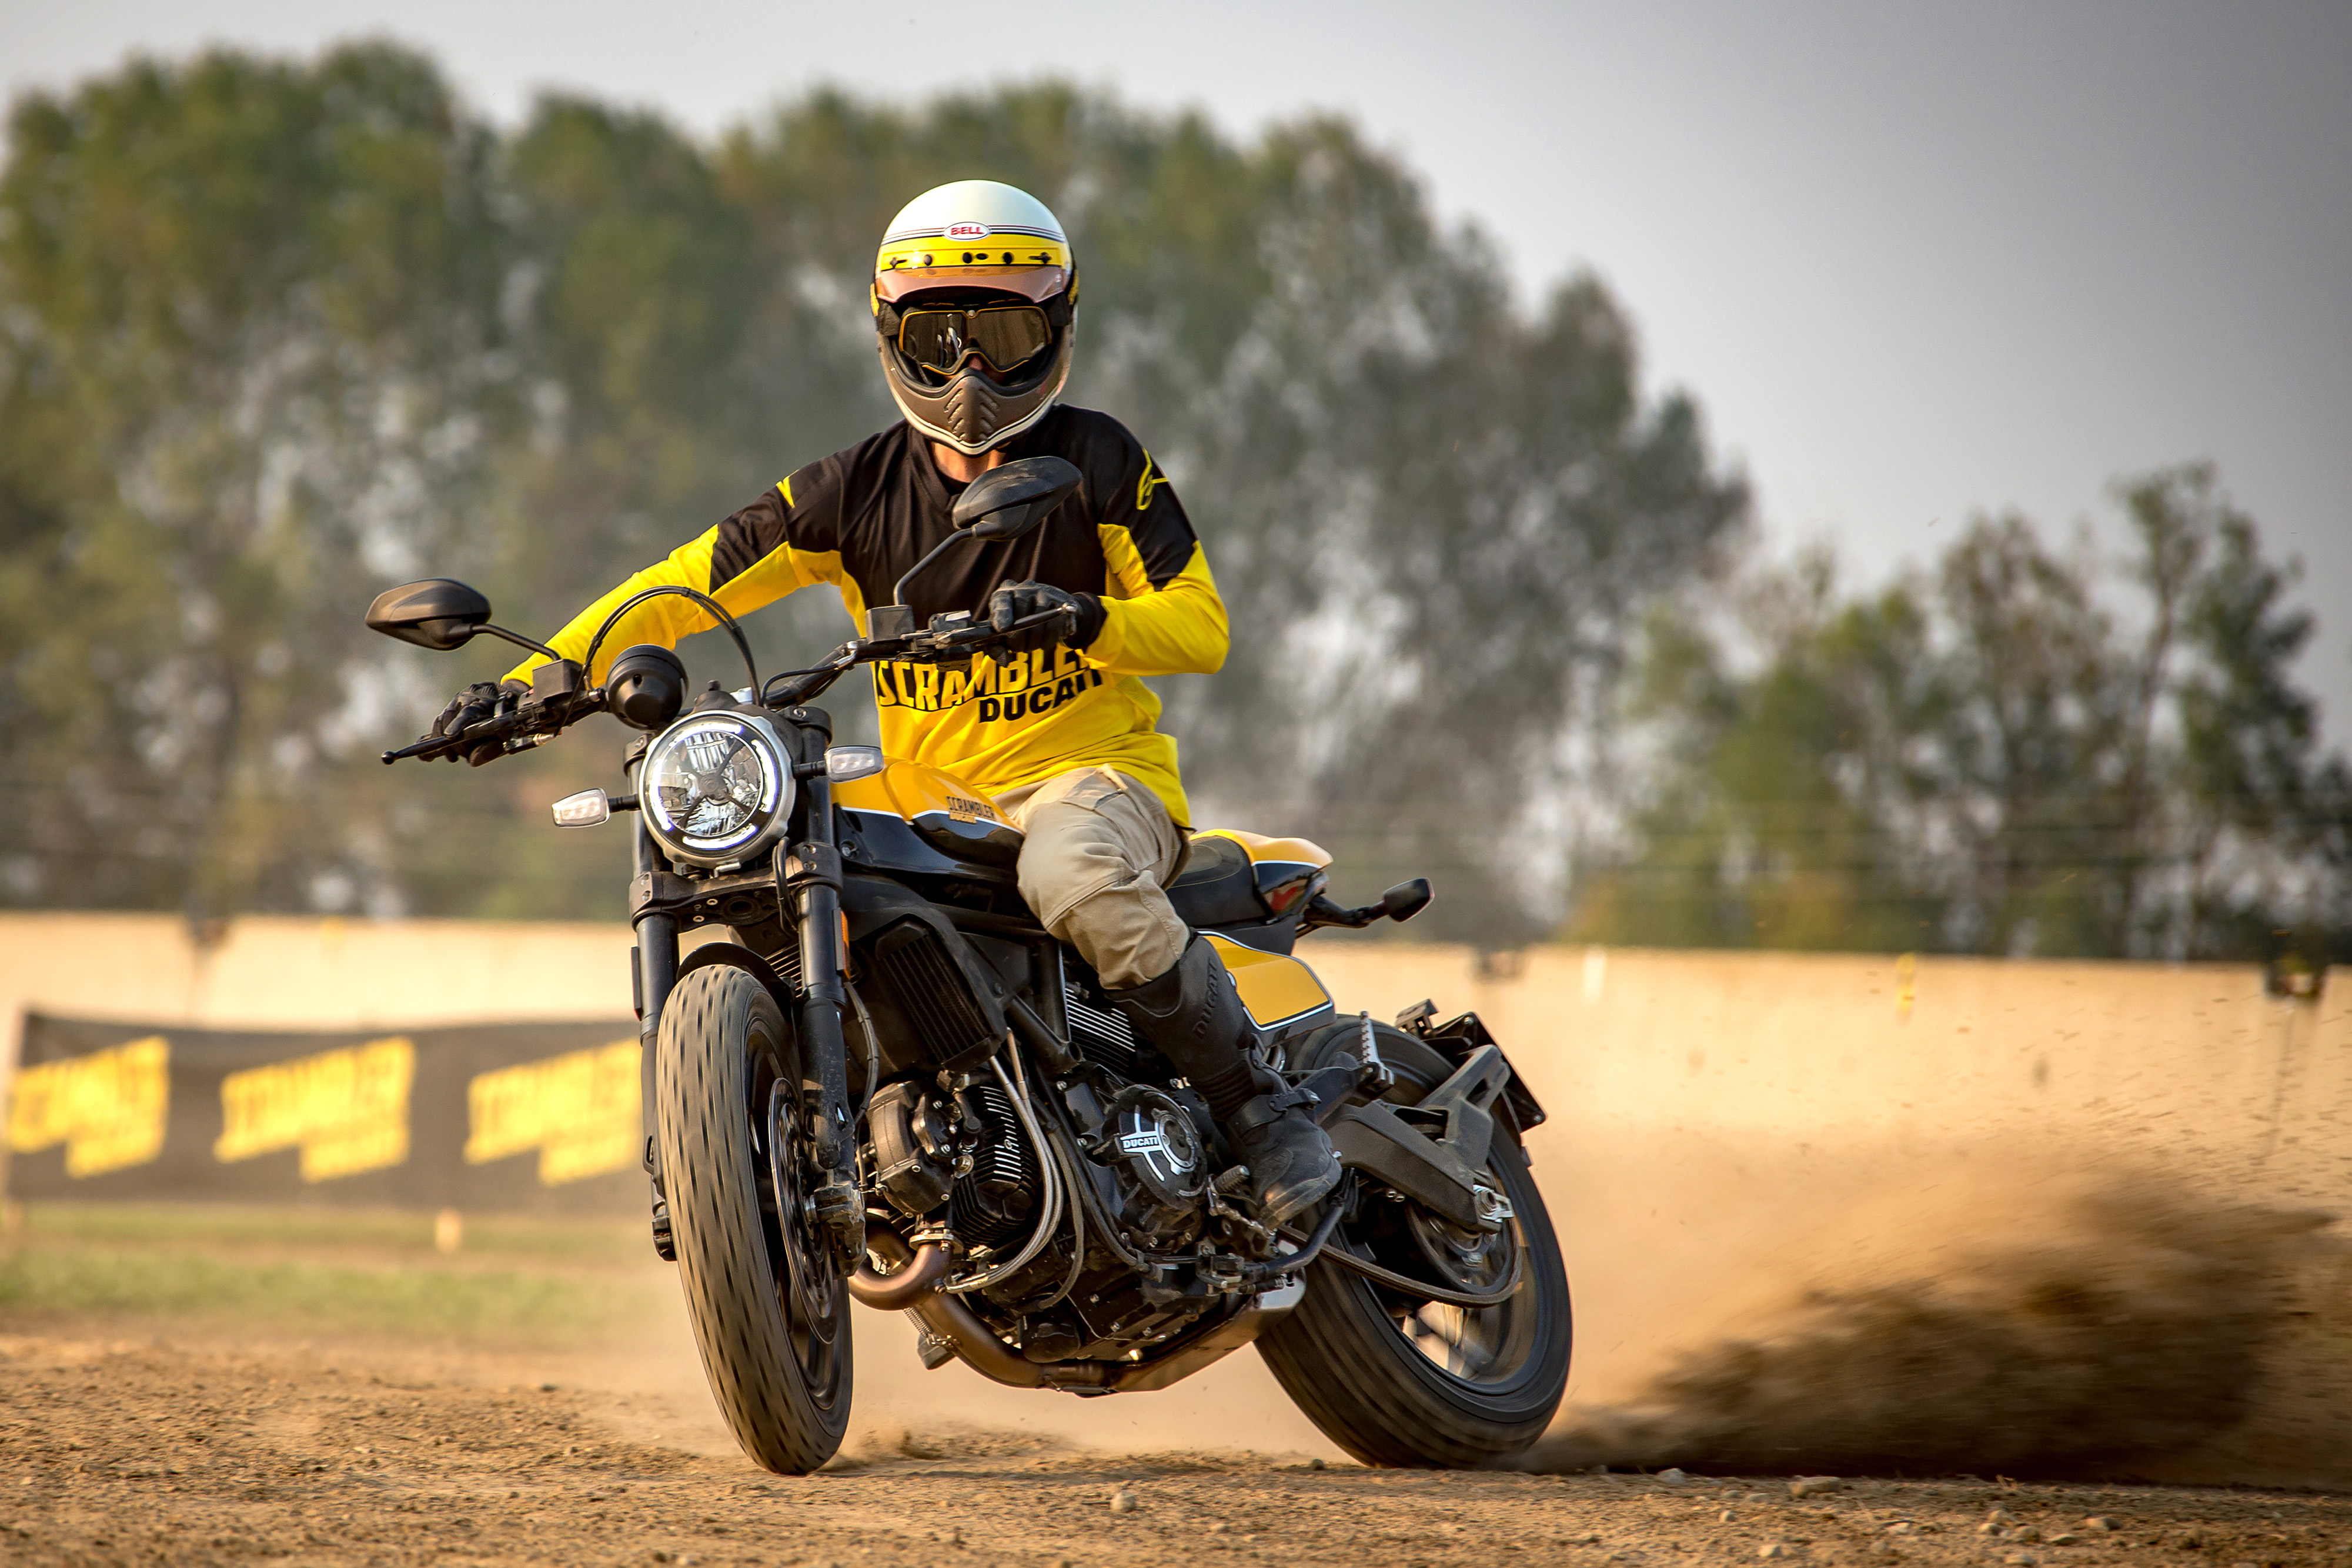 Ducati Scrambler Full Throttle ambience 04 UC67956 Mid